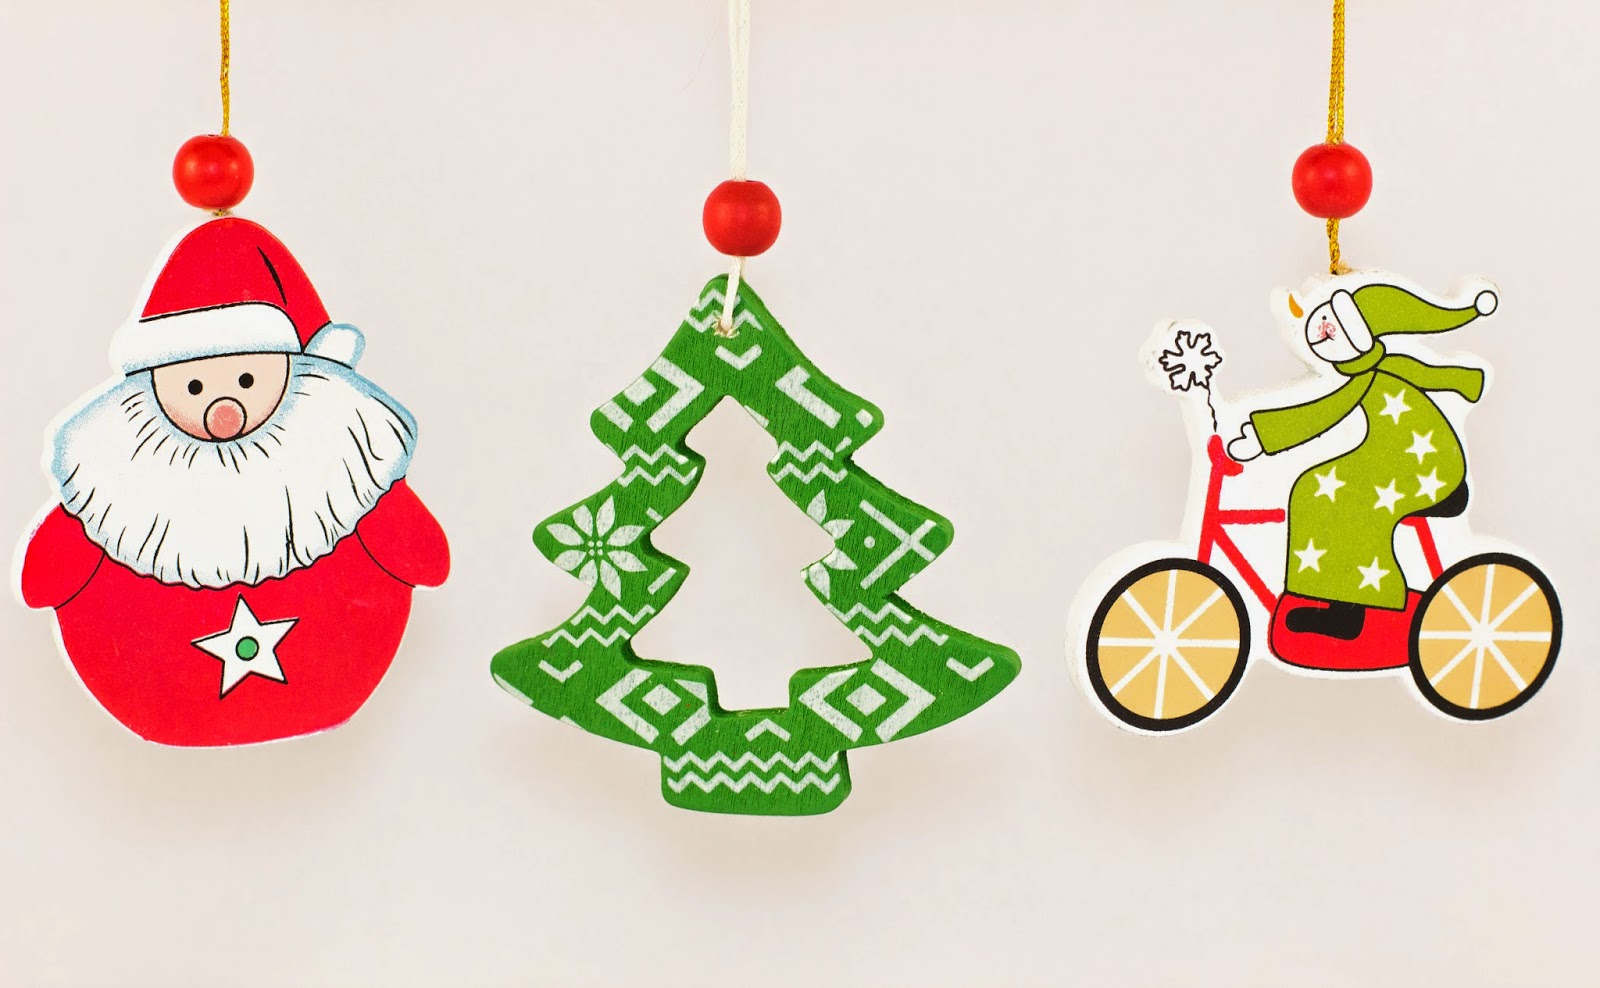 xmas tree pictures for kids - photo #32